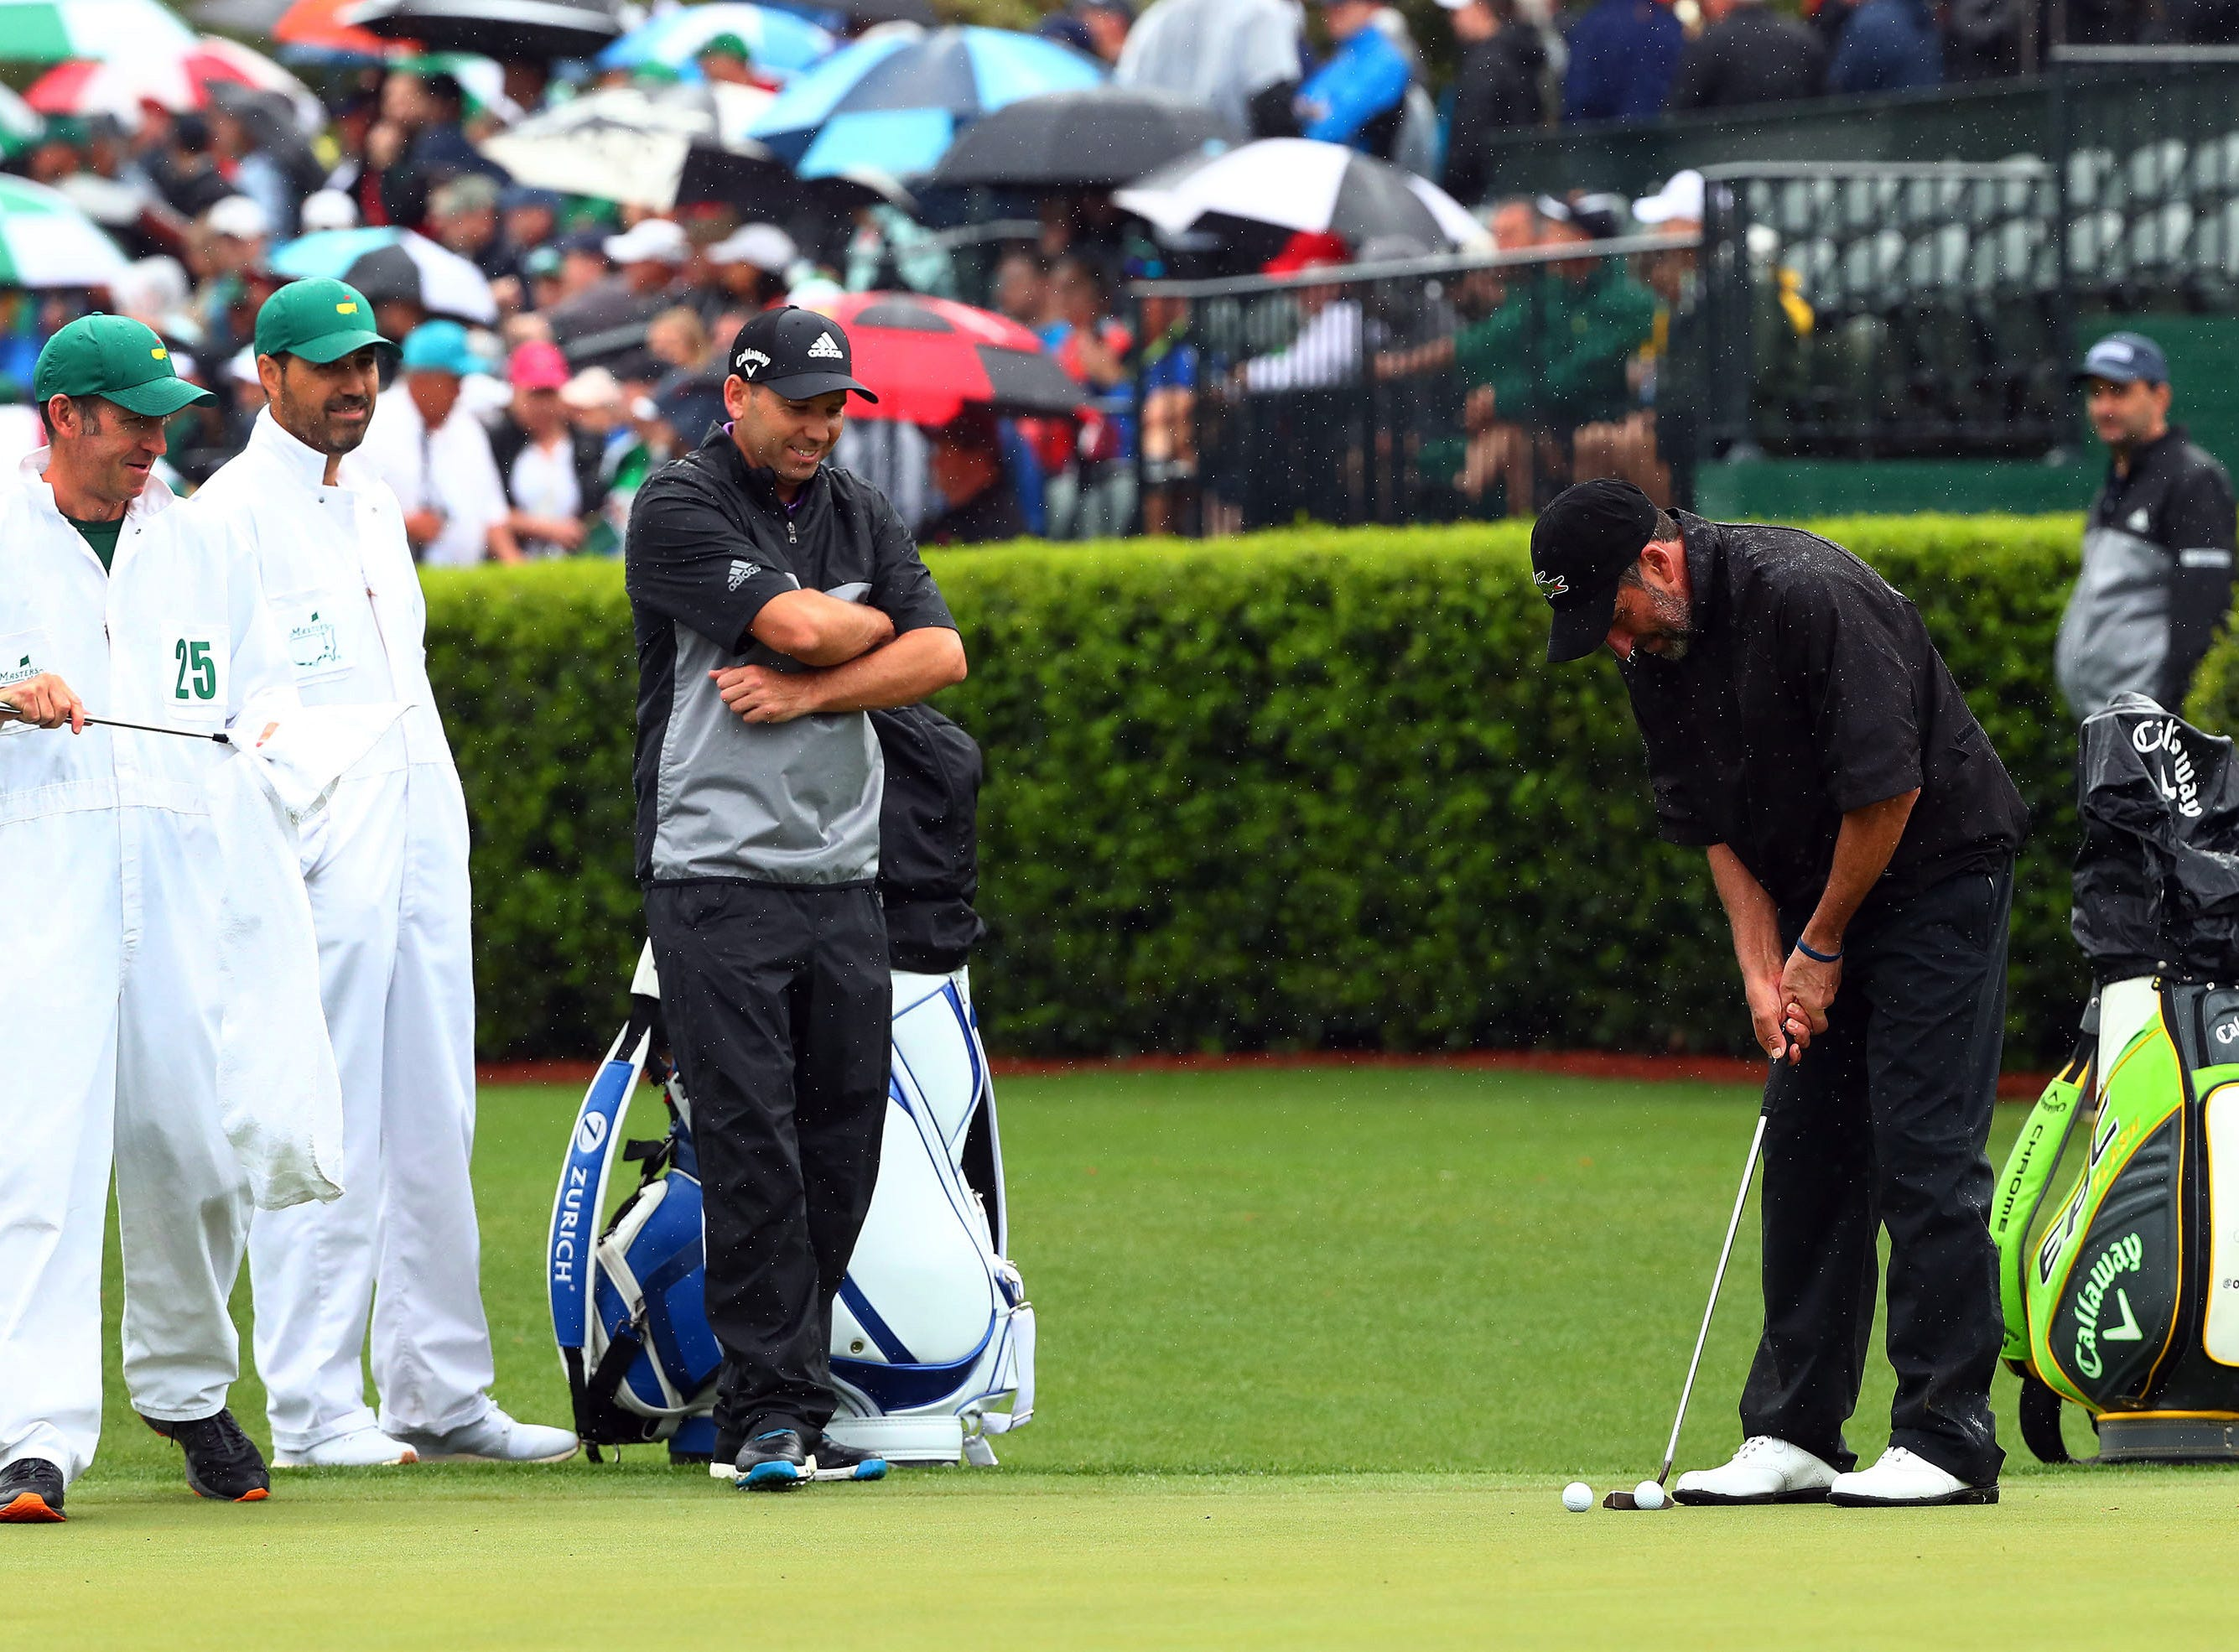 Apr 9, 2019; Augusta, GA, USA; Sergio Garcia of Spain watches Jose Maria Olazabal of Spain putt at the practice facility during a practice round for The Masters golf tournament at Augusta National Golf Club. Mandatory Credit: Rob Schumacher-USA TODAY Sports